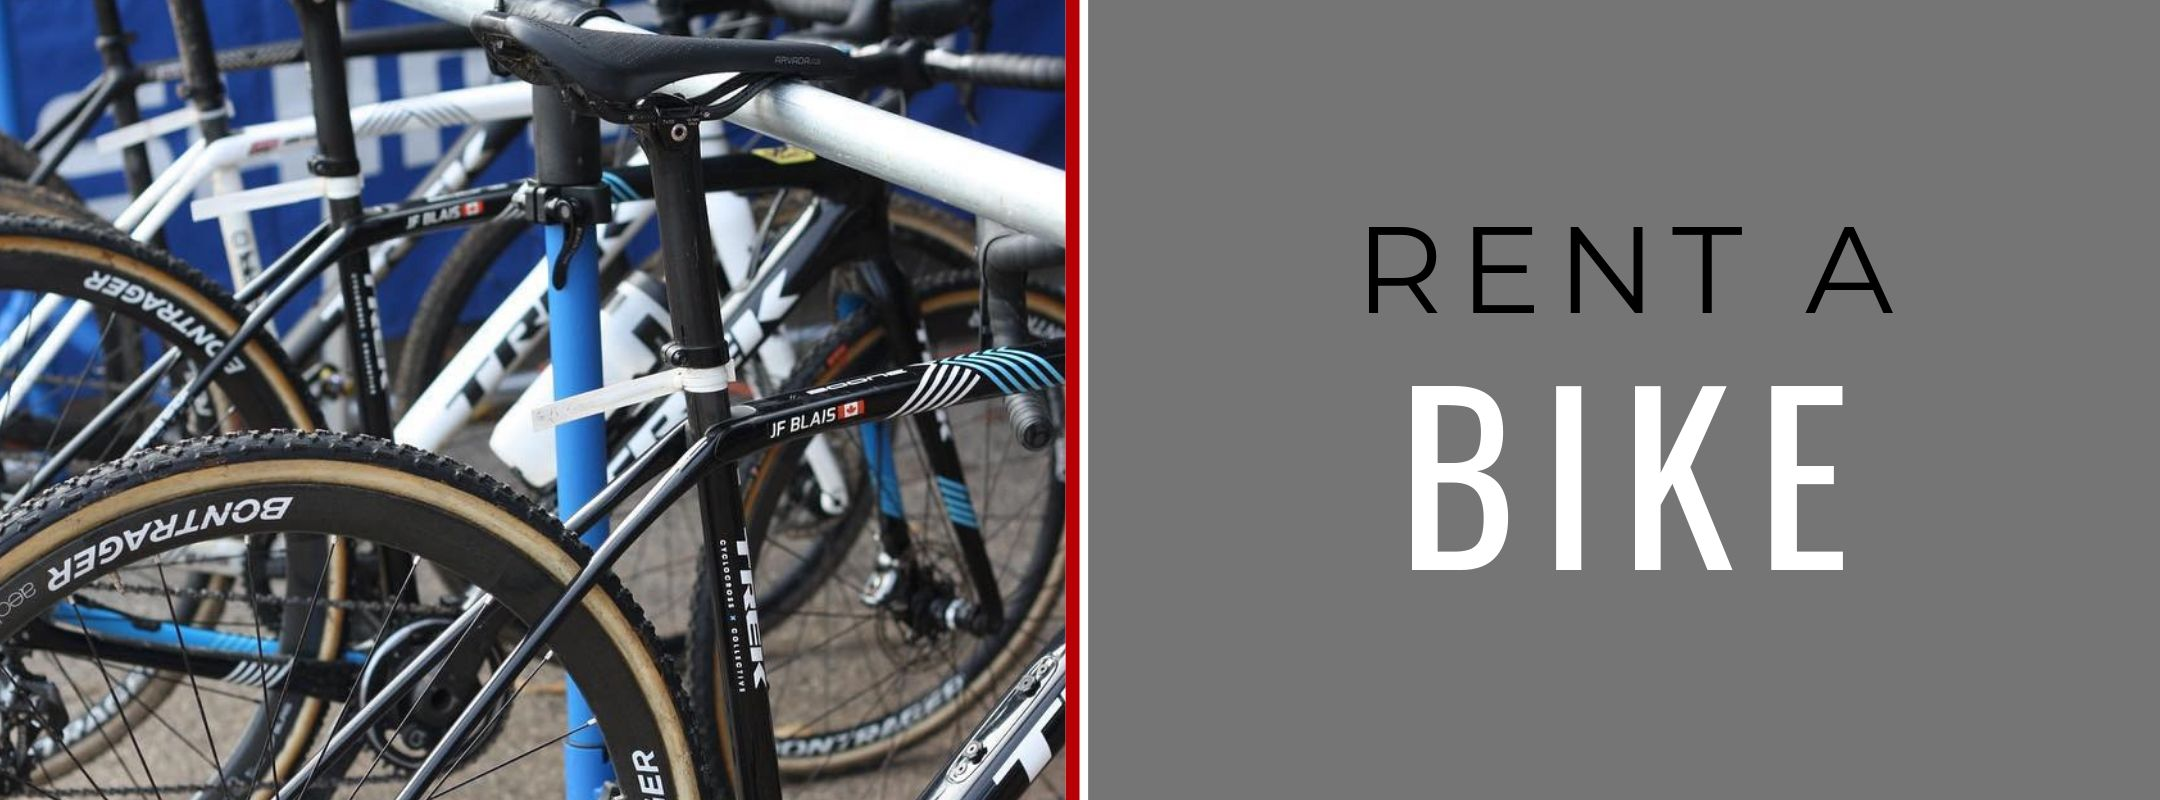 ADULT BICYCLE RENTALS